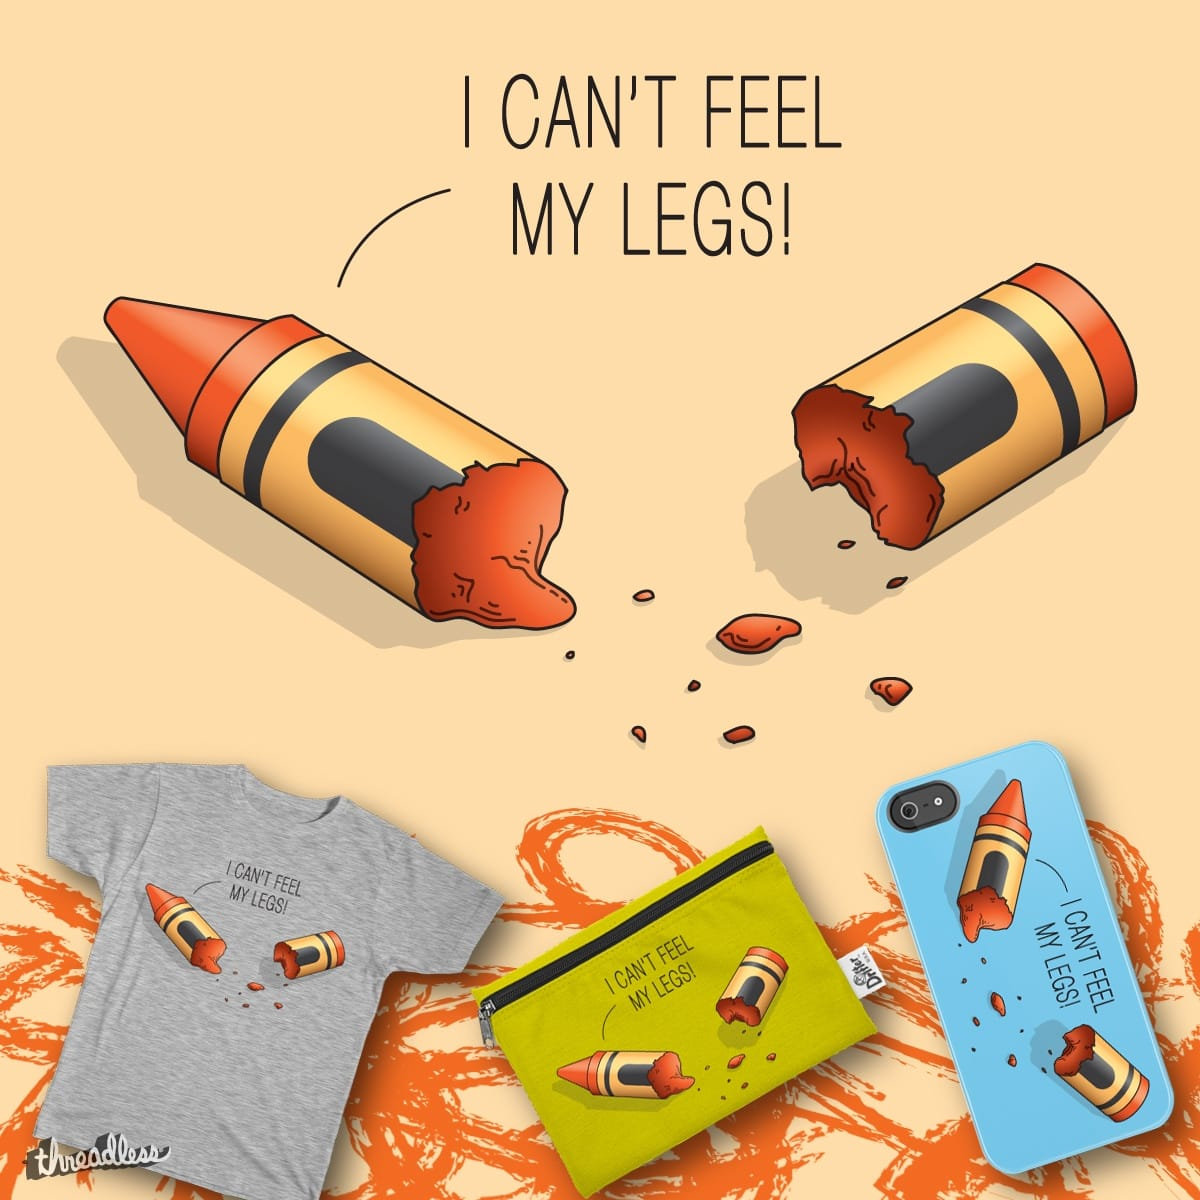 I CAN'T FEEL MY LEGS! by GeepersPeepers on Threadless